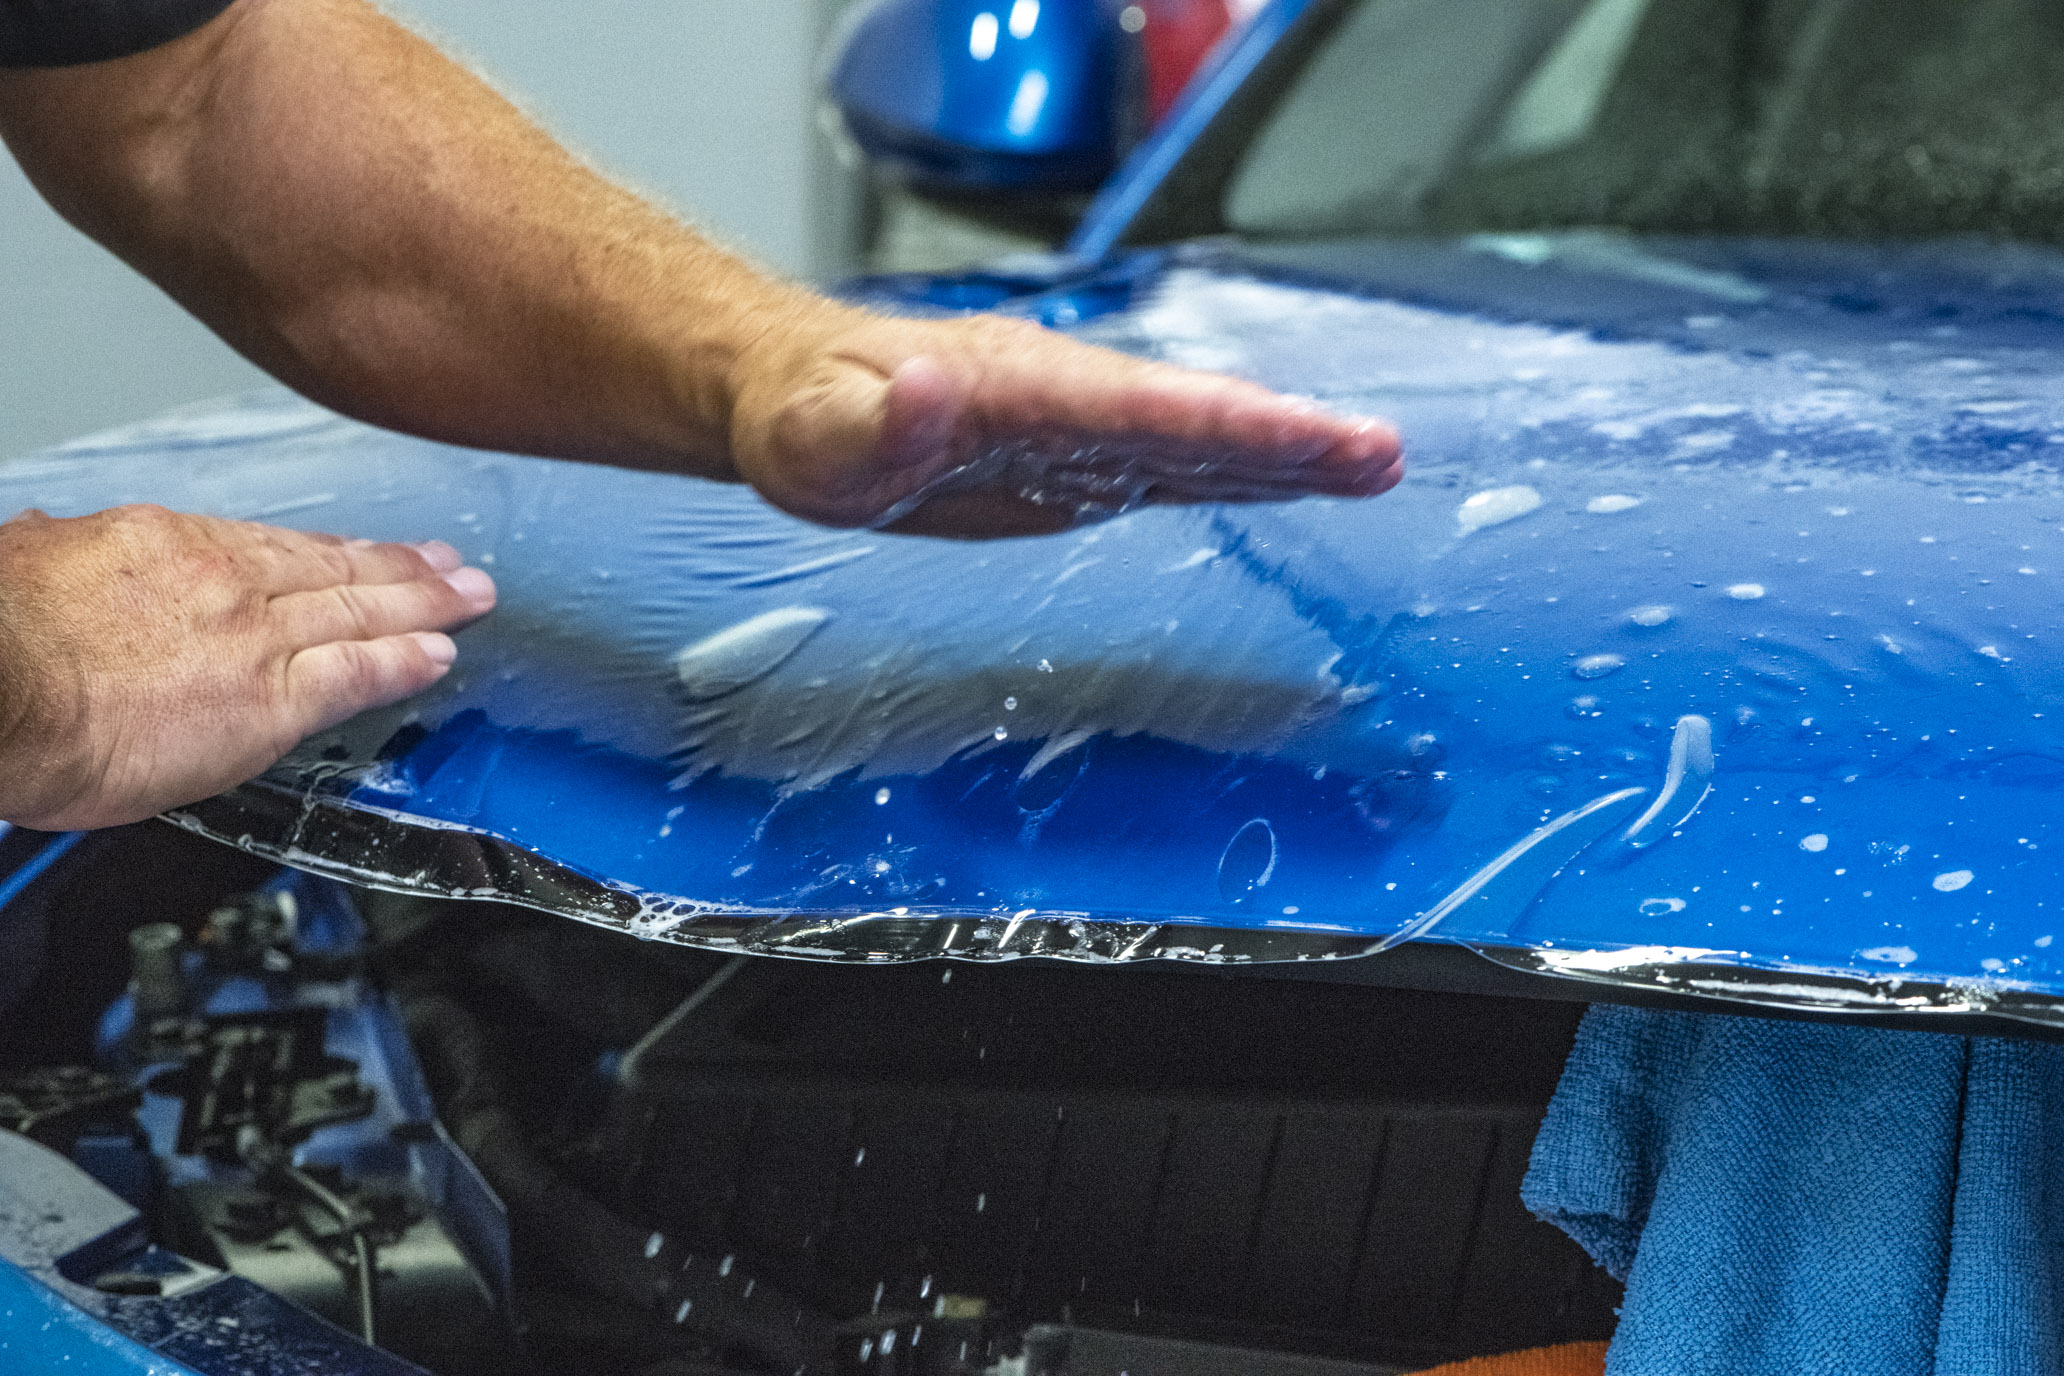 Protecting Your Car's Paint with Paint Protection Film